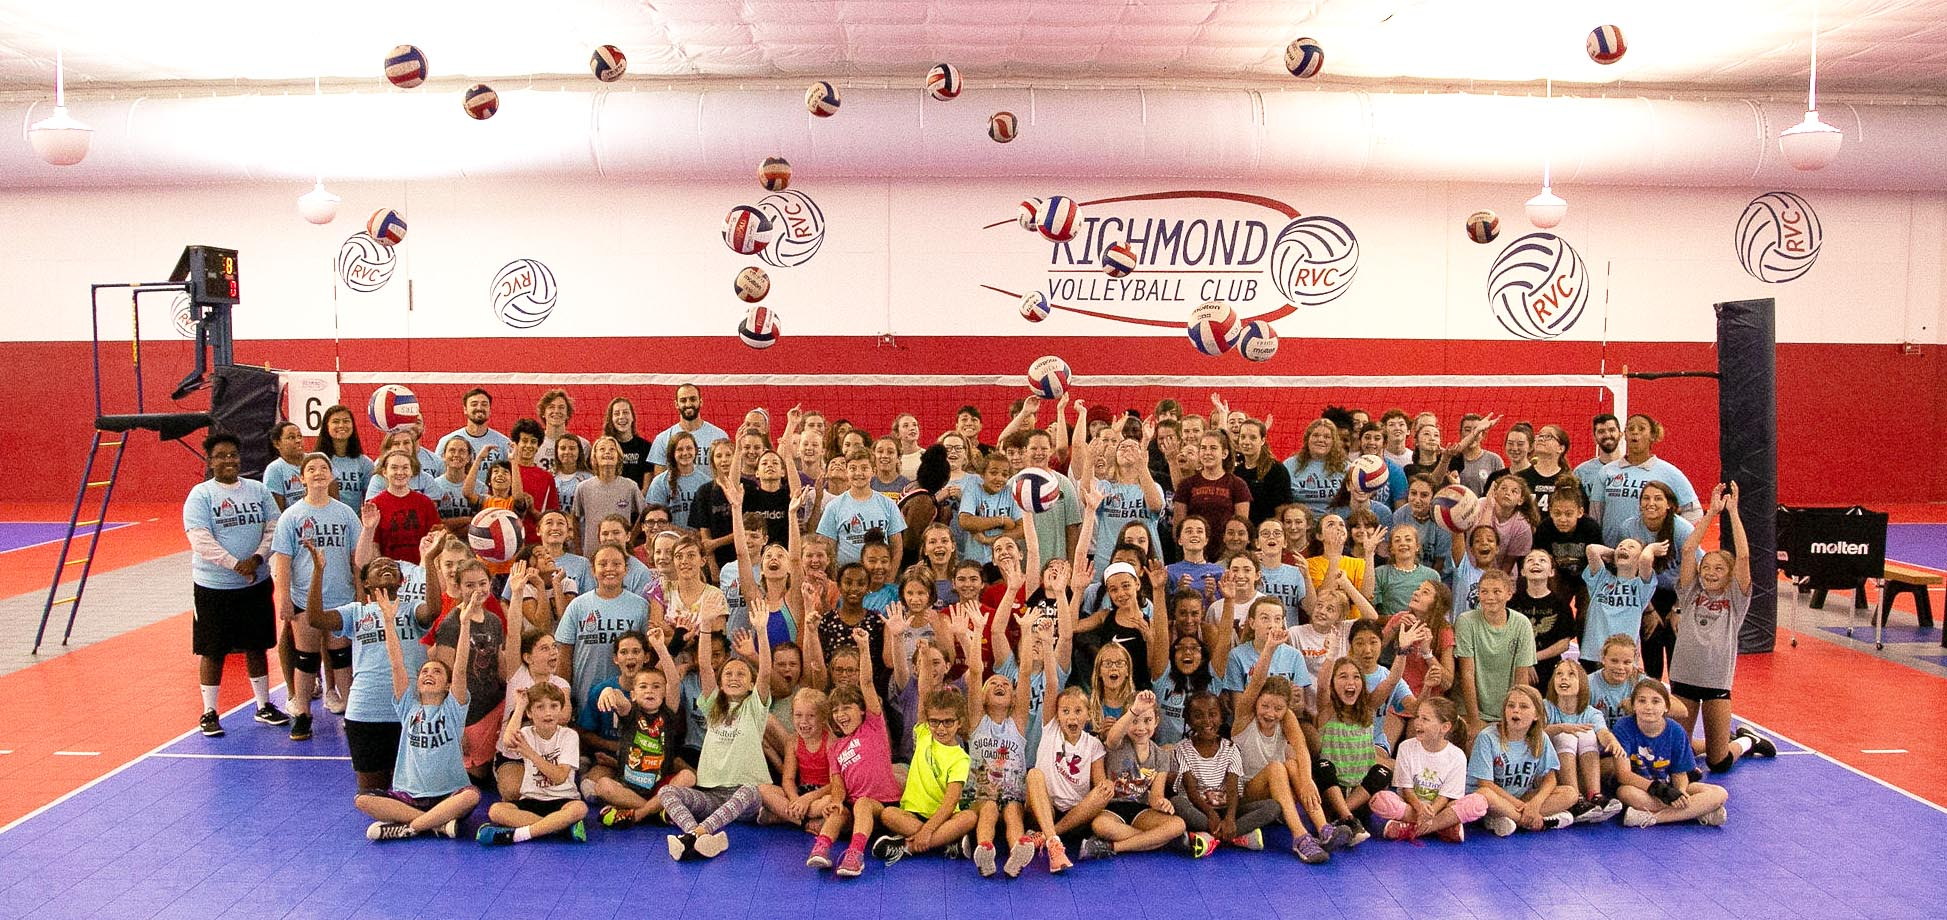 summer camps at Richmond Volleyball Club campers and staff group photo